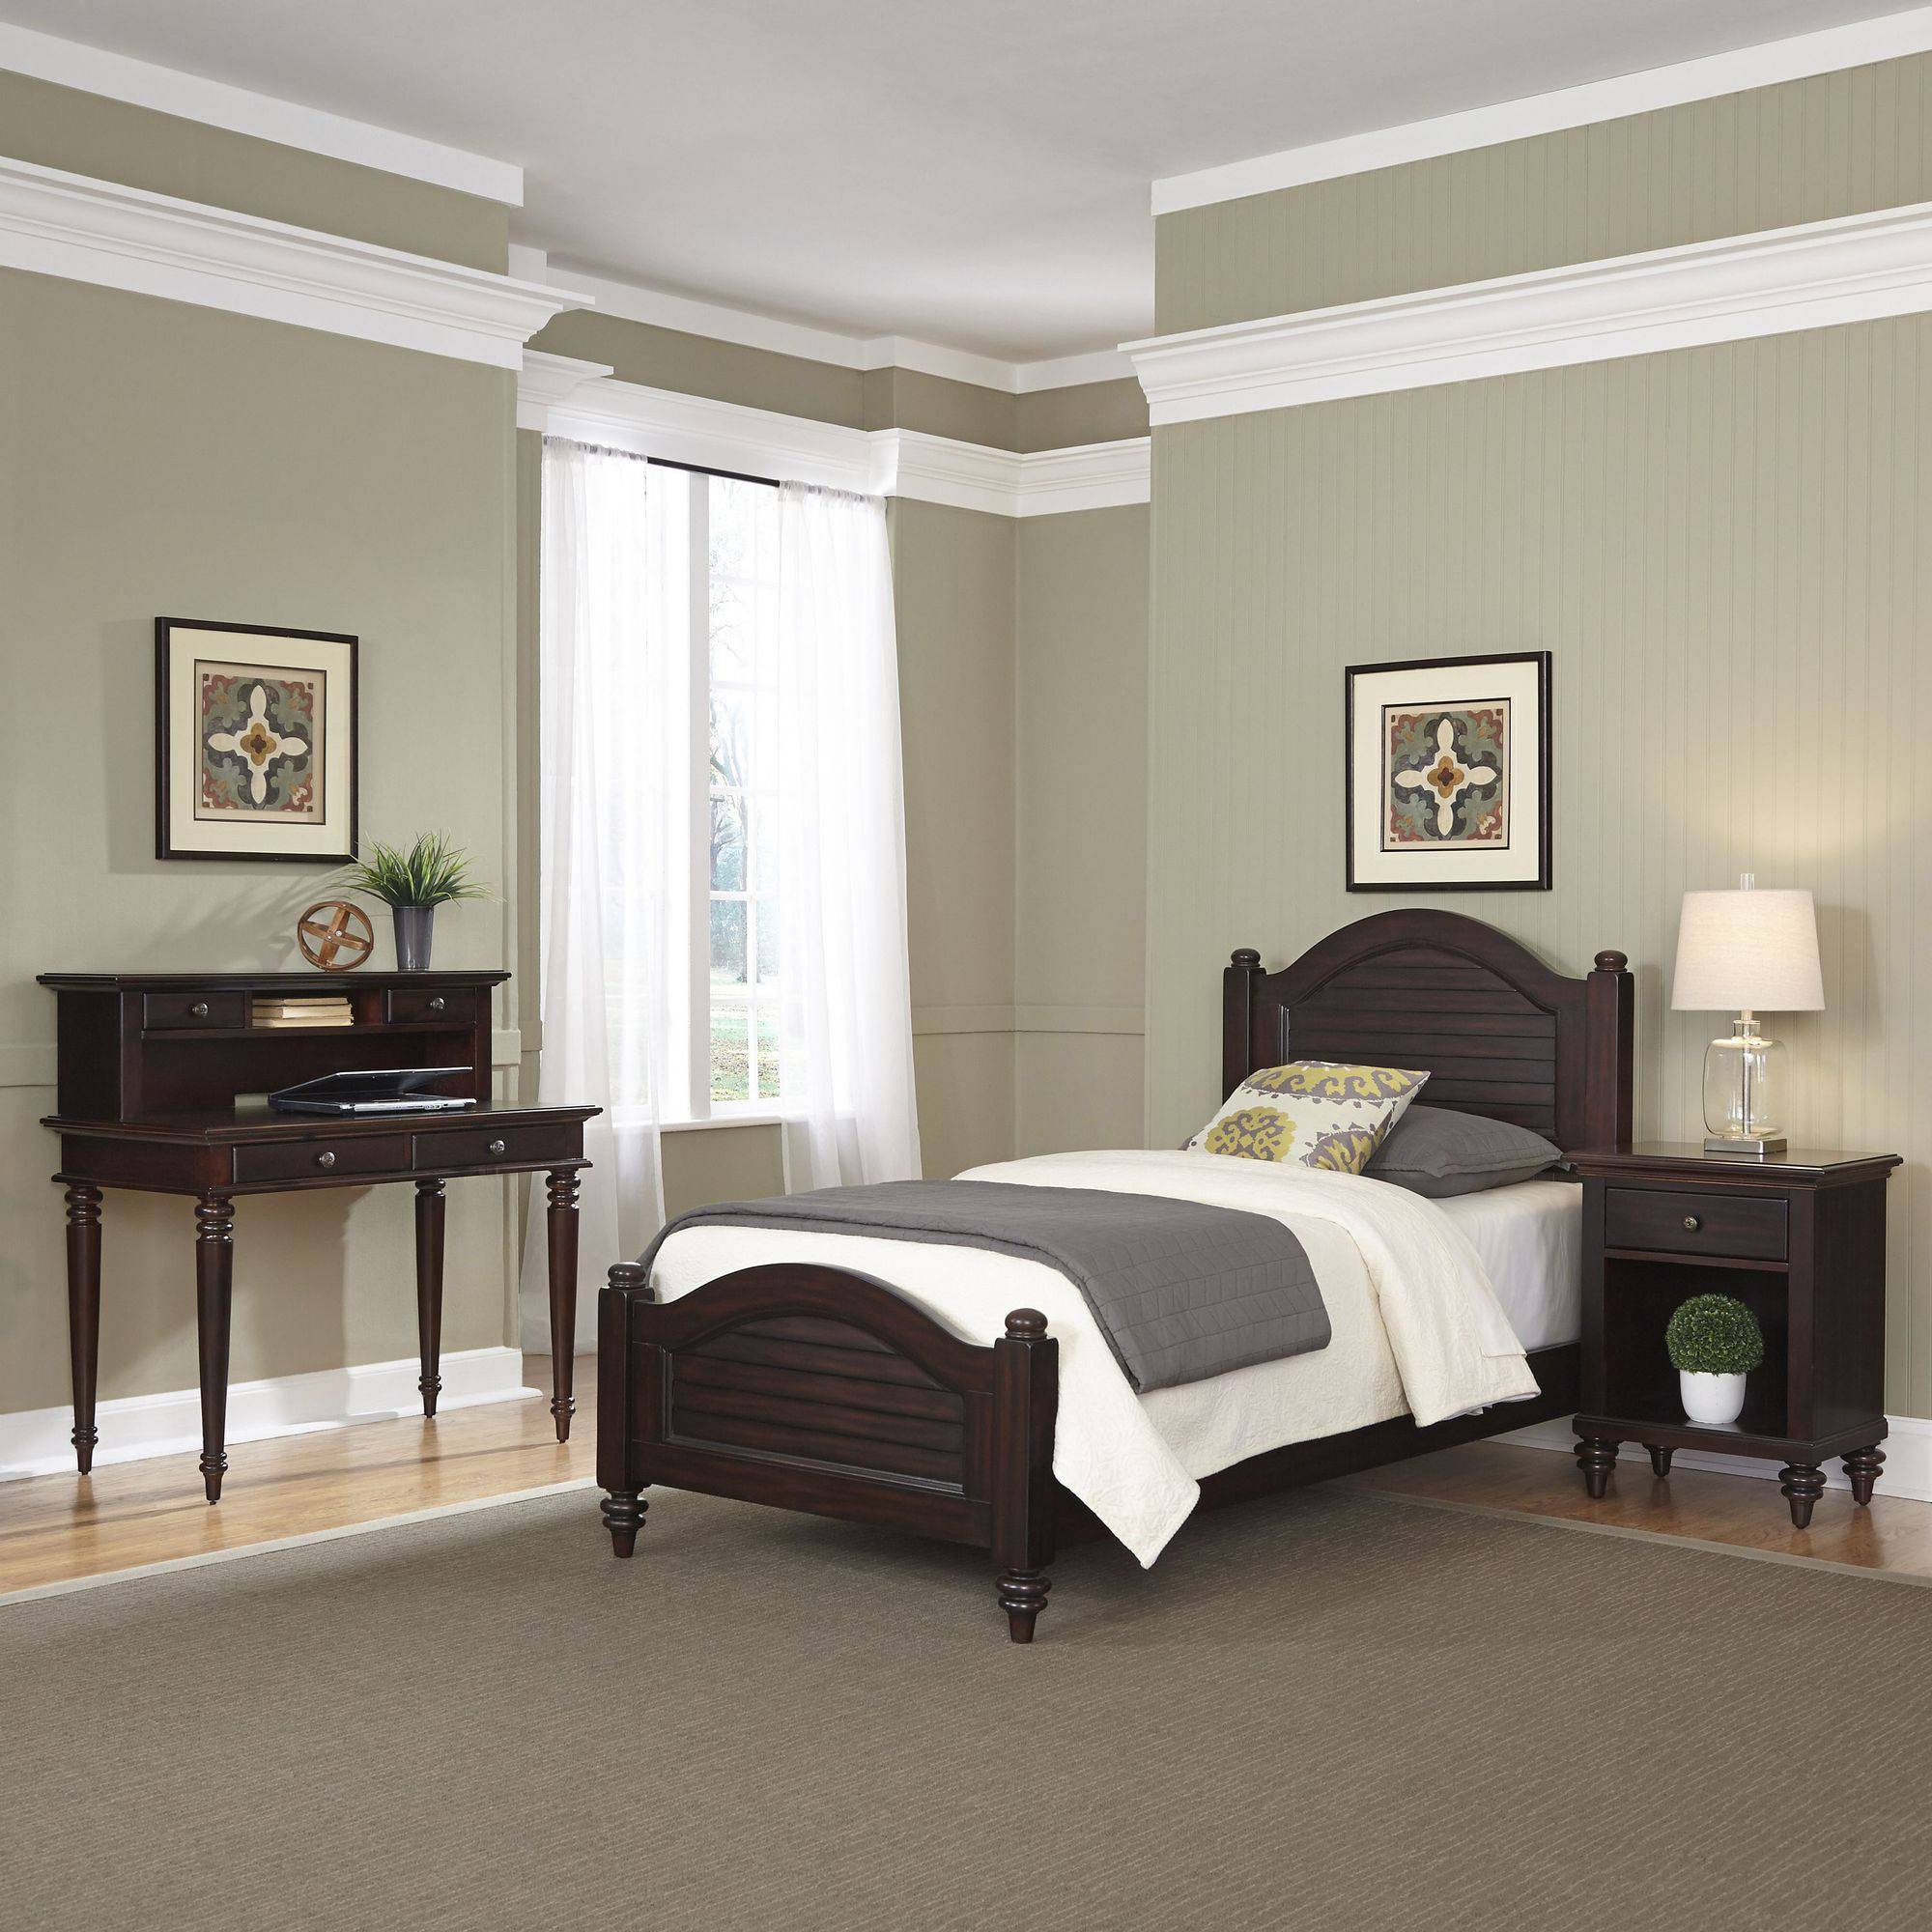 Home Styles Furniture Bermuda Espresso Twin Bed, Night Stand and Student Desk with Hutch